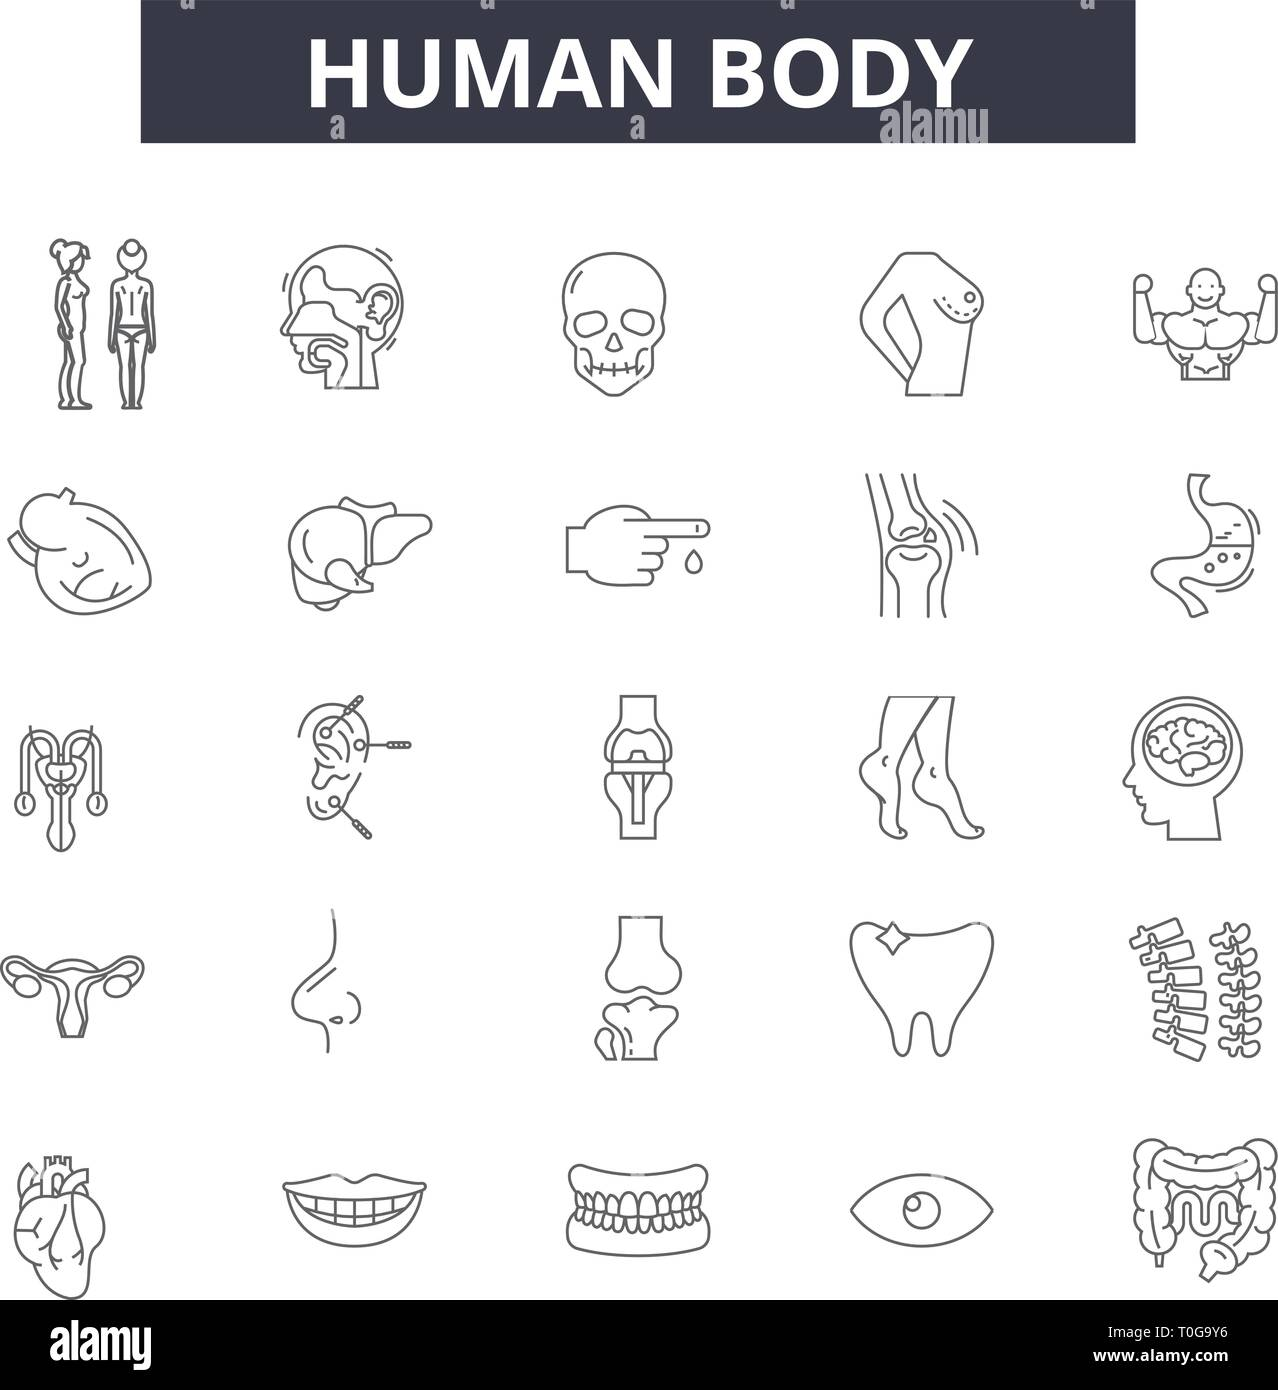 Human body line icons for web and mobile. Editable stroke signs. Human body outline concept illustrations - Stock Image